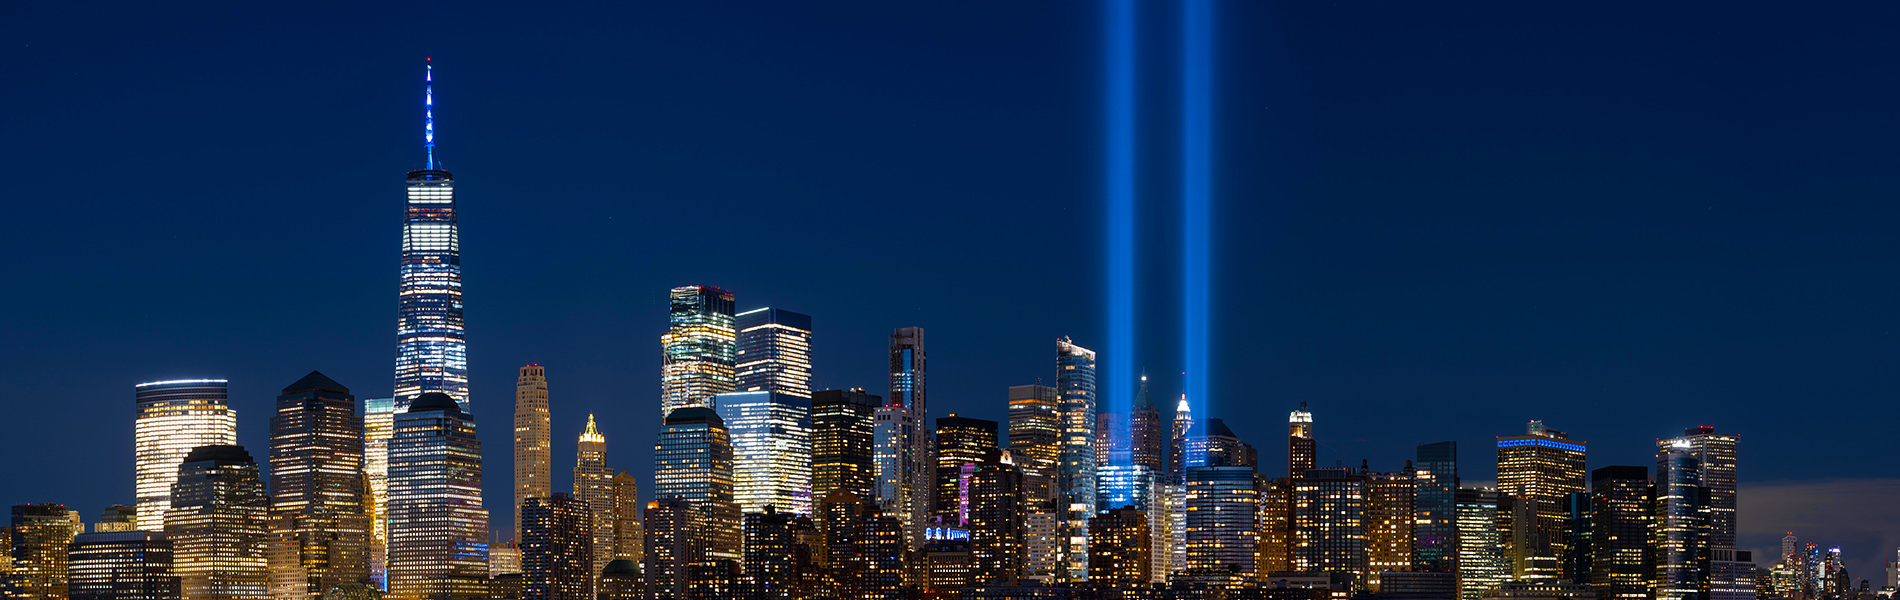 blue beams of light mark twin towers site